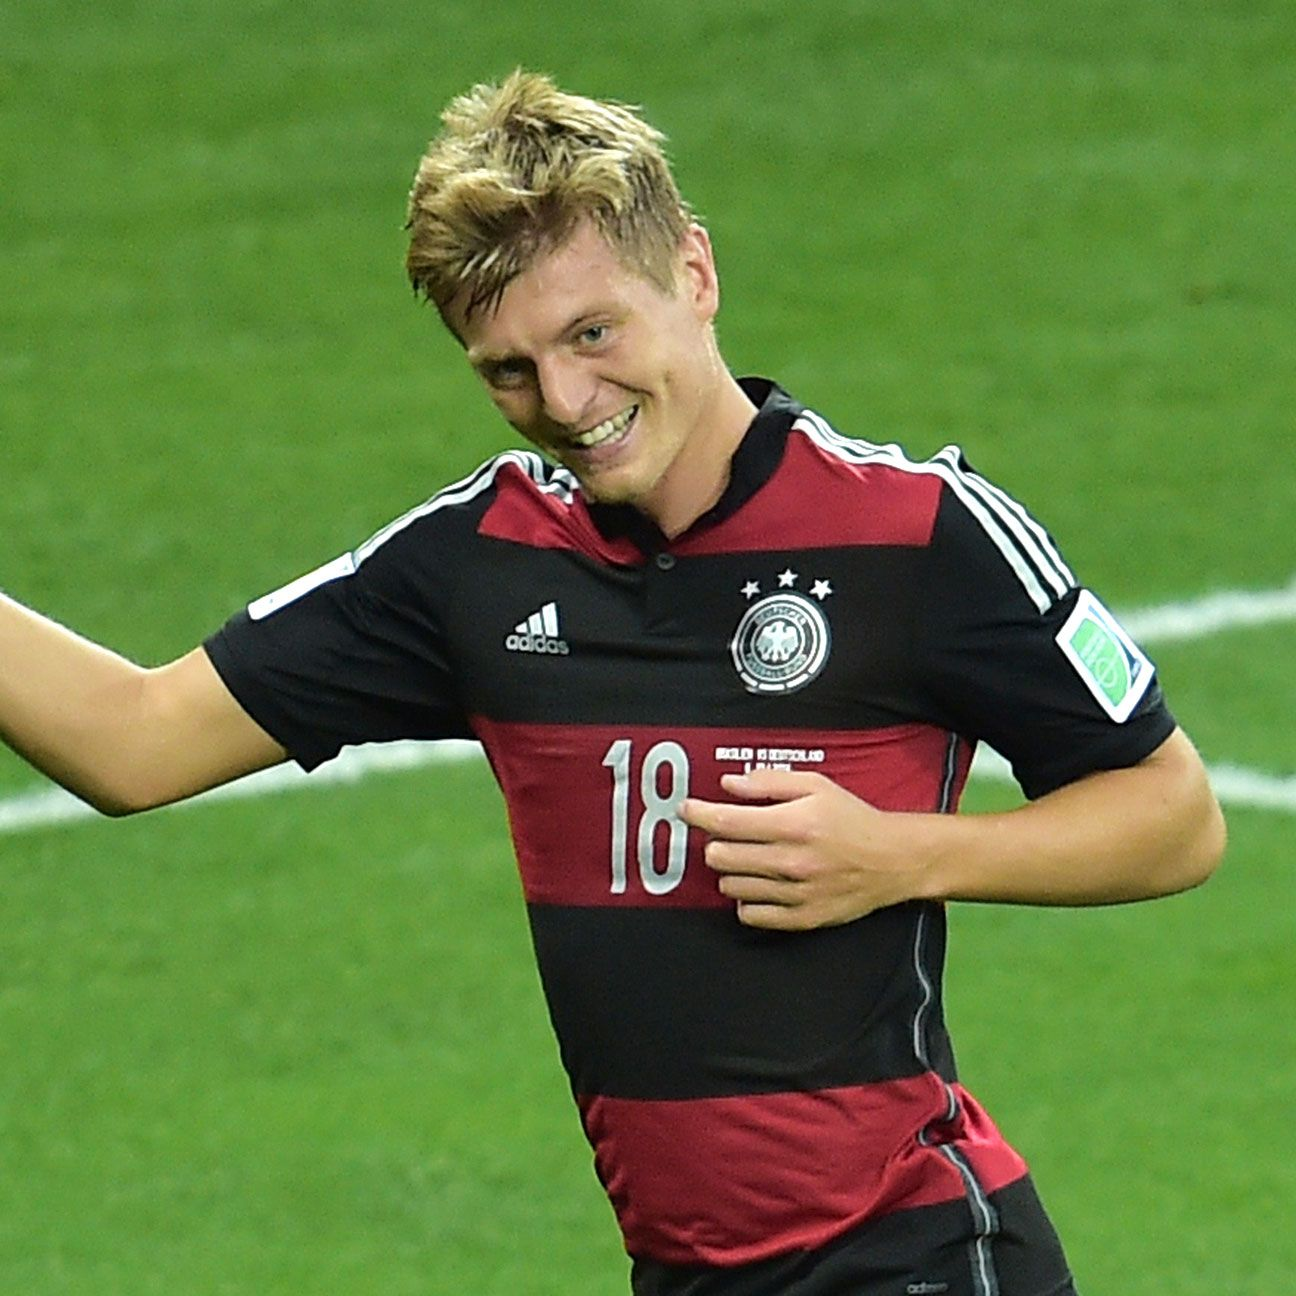 The 2014 World Cup will be remembered as the one in which Toni Kroos broke out to a global audience.